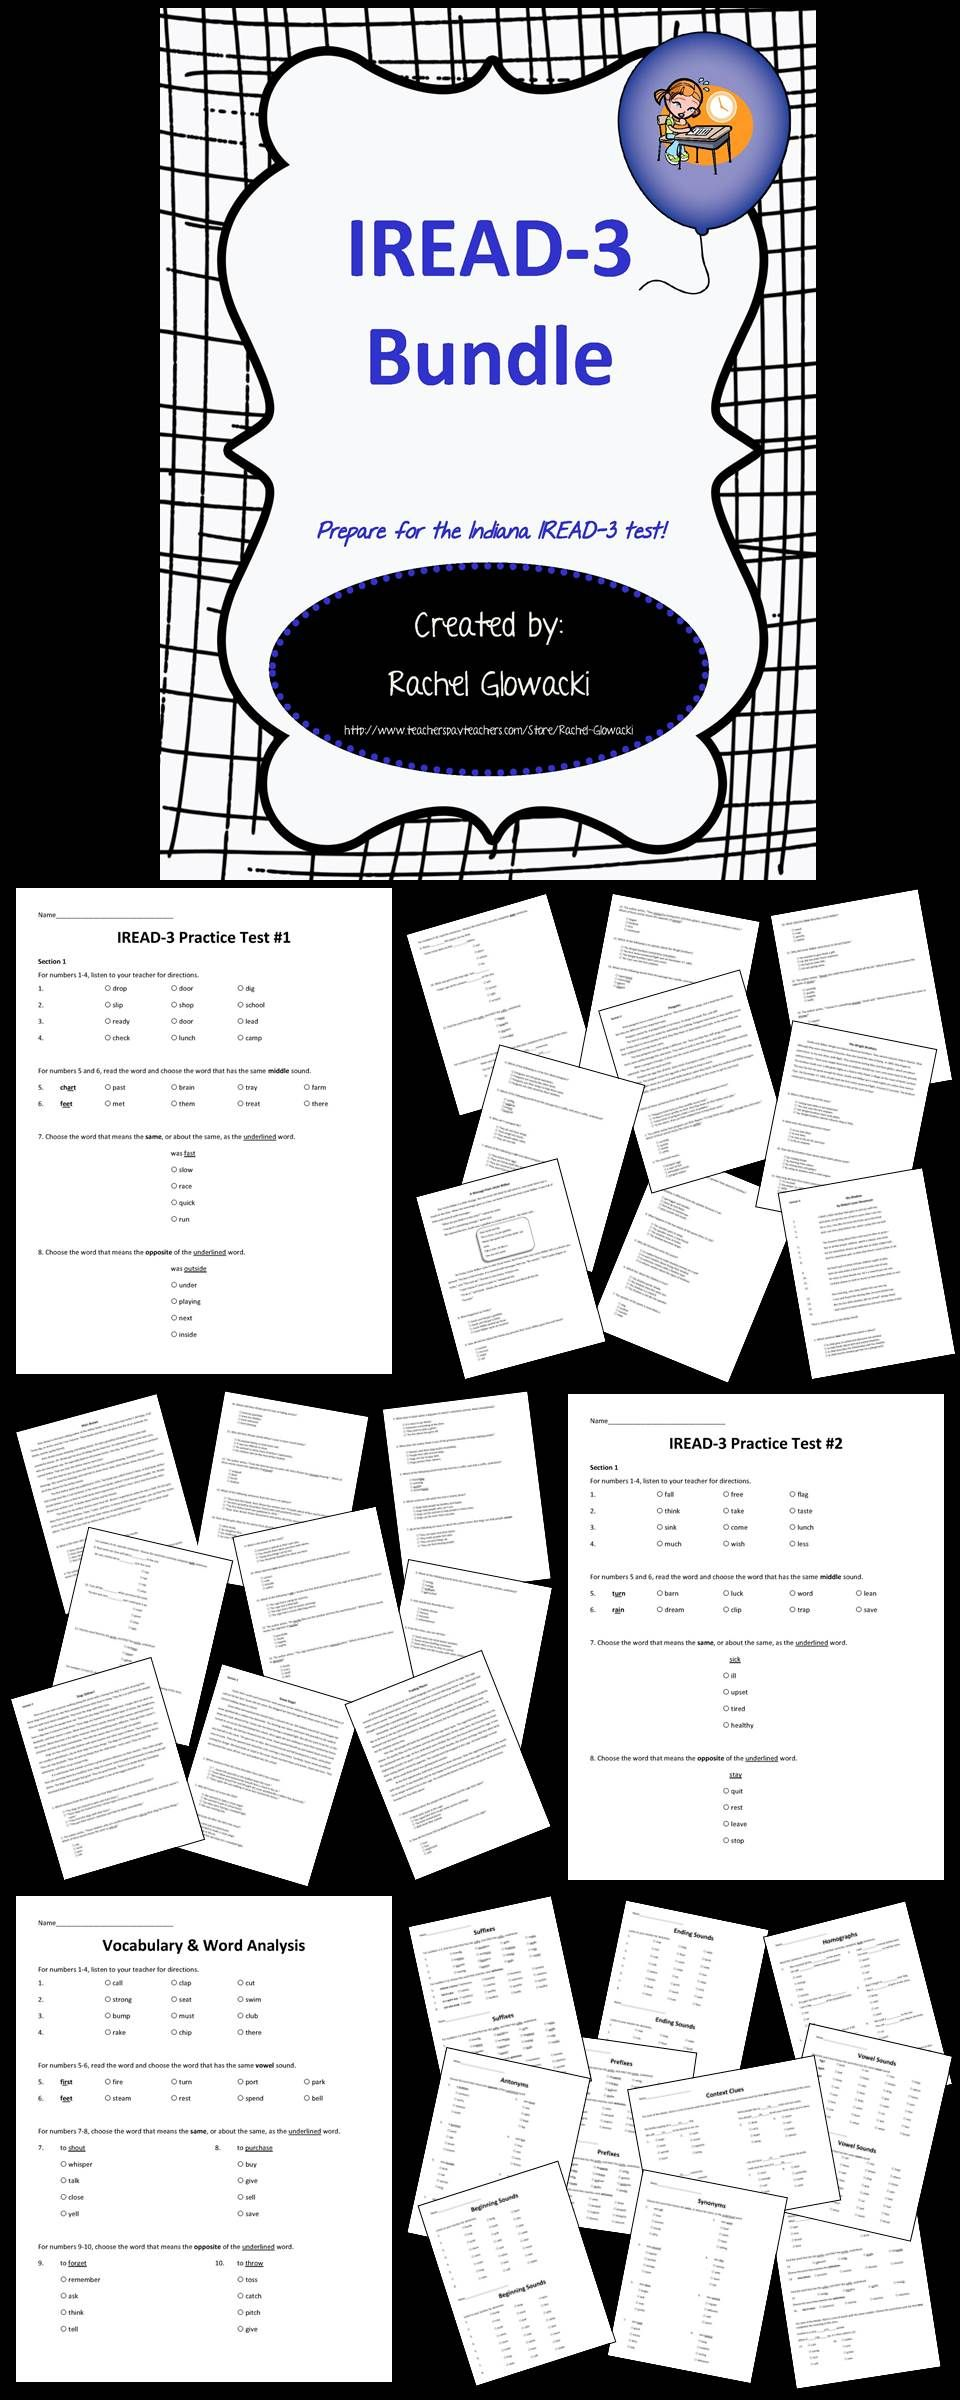 worksheet Iread Practice Worksheets iread 3 bundle chart teacher and students get your ready with this robust prep it includes 2 full practice tests reading passages also included in the bund